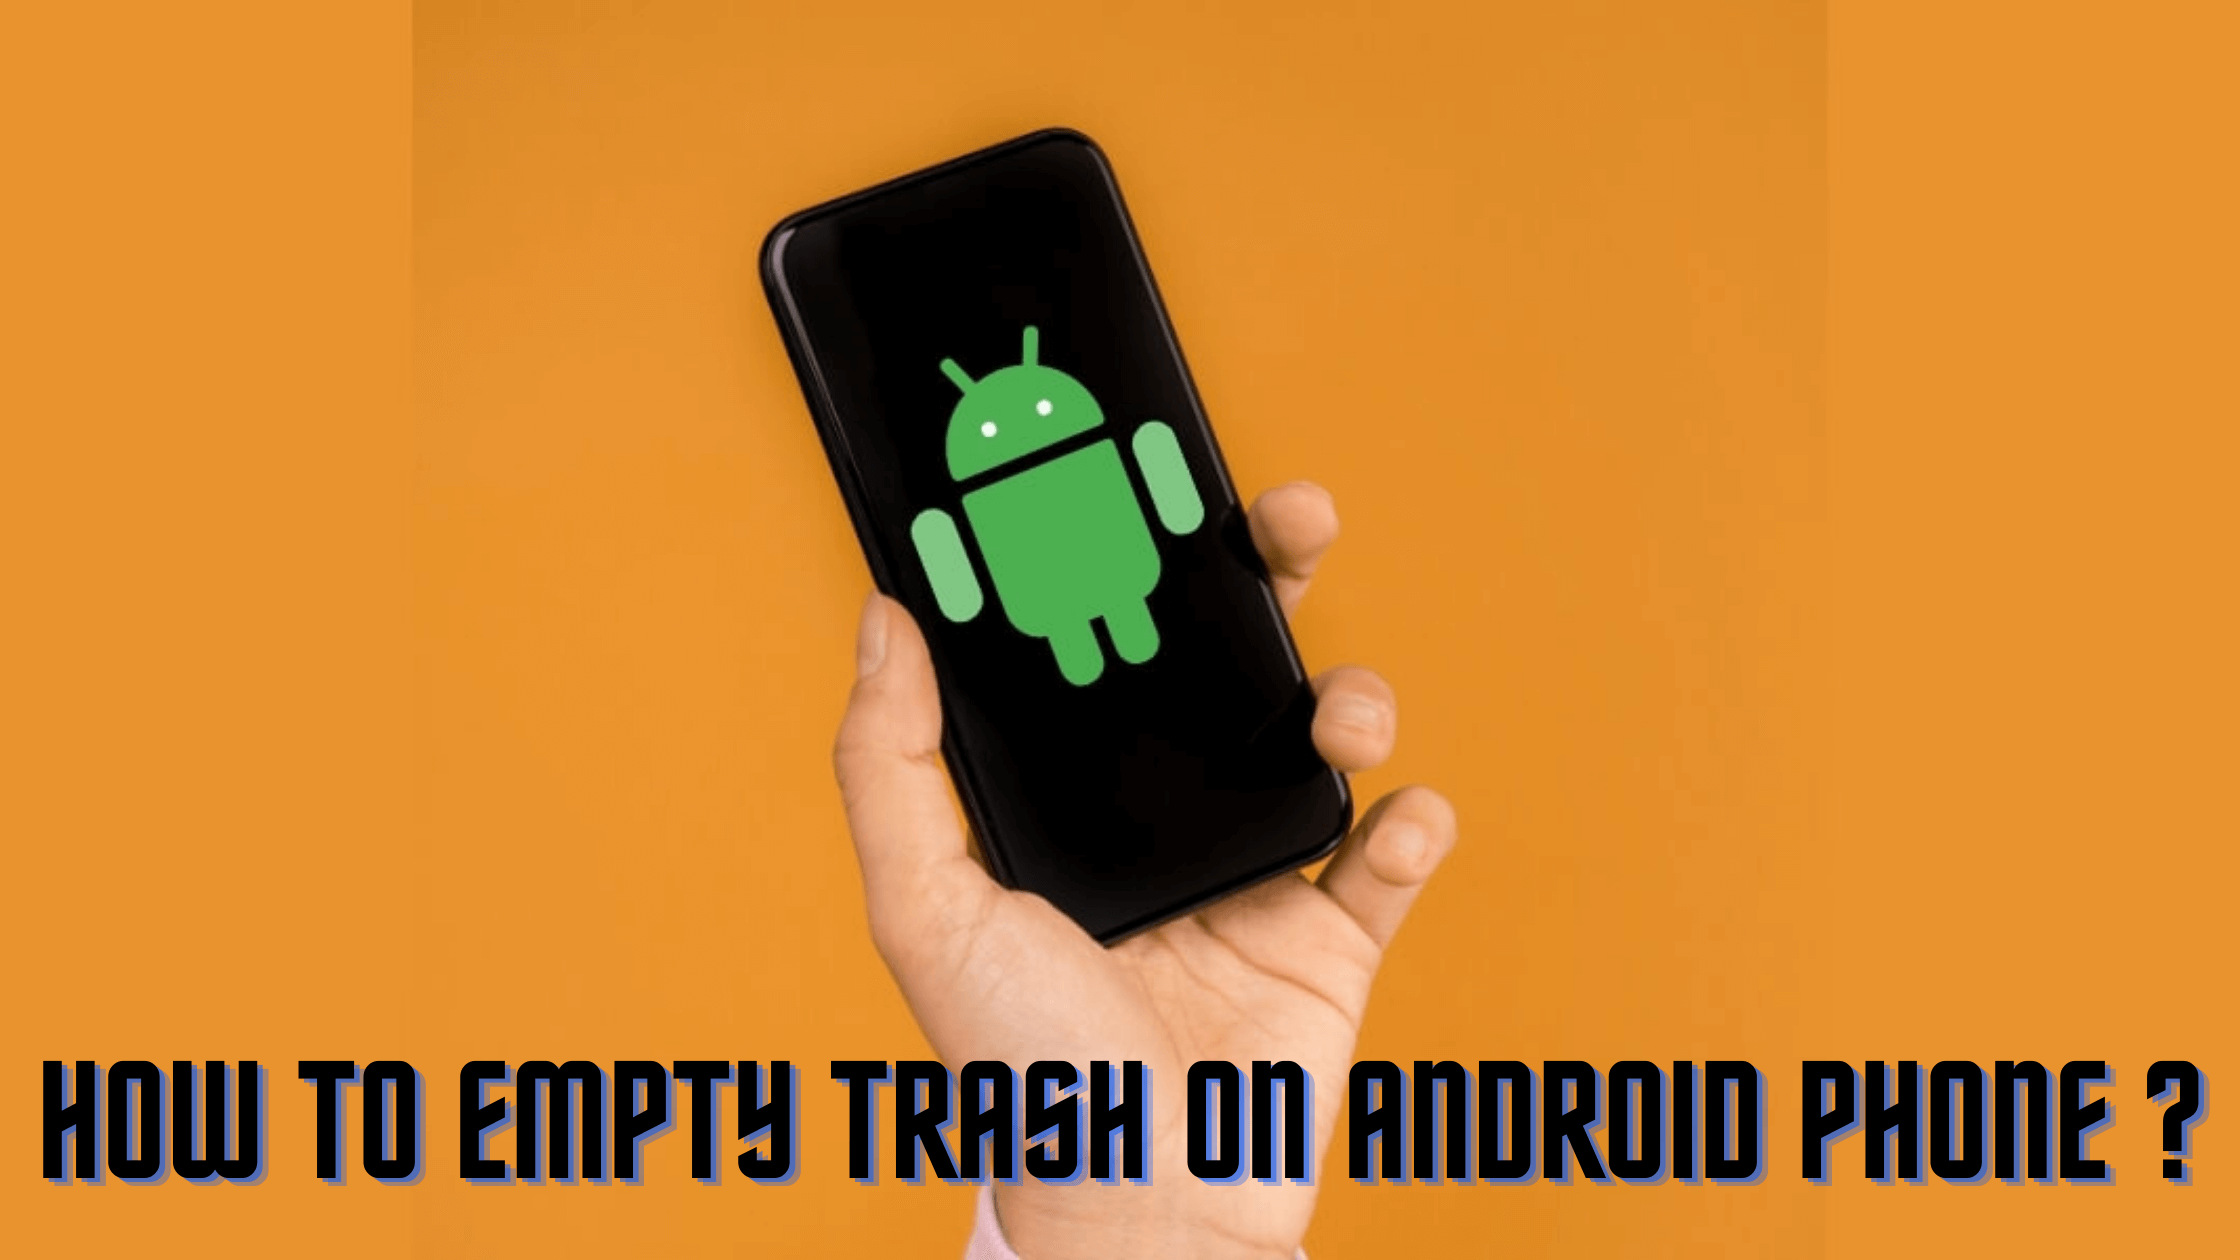 How To Empty Trash On Android Phone